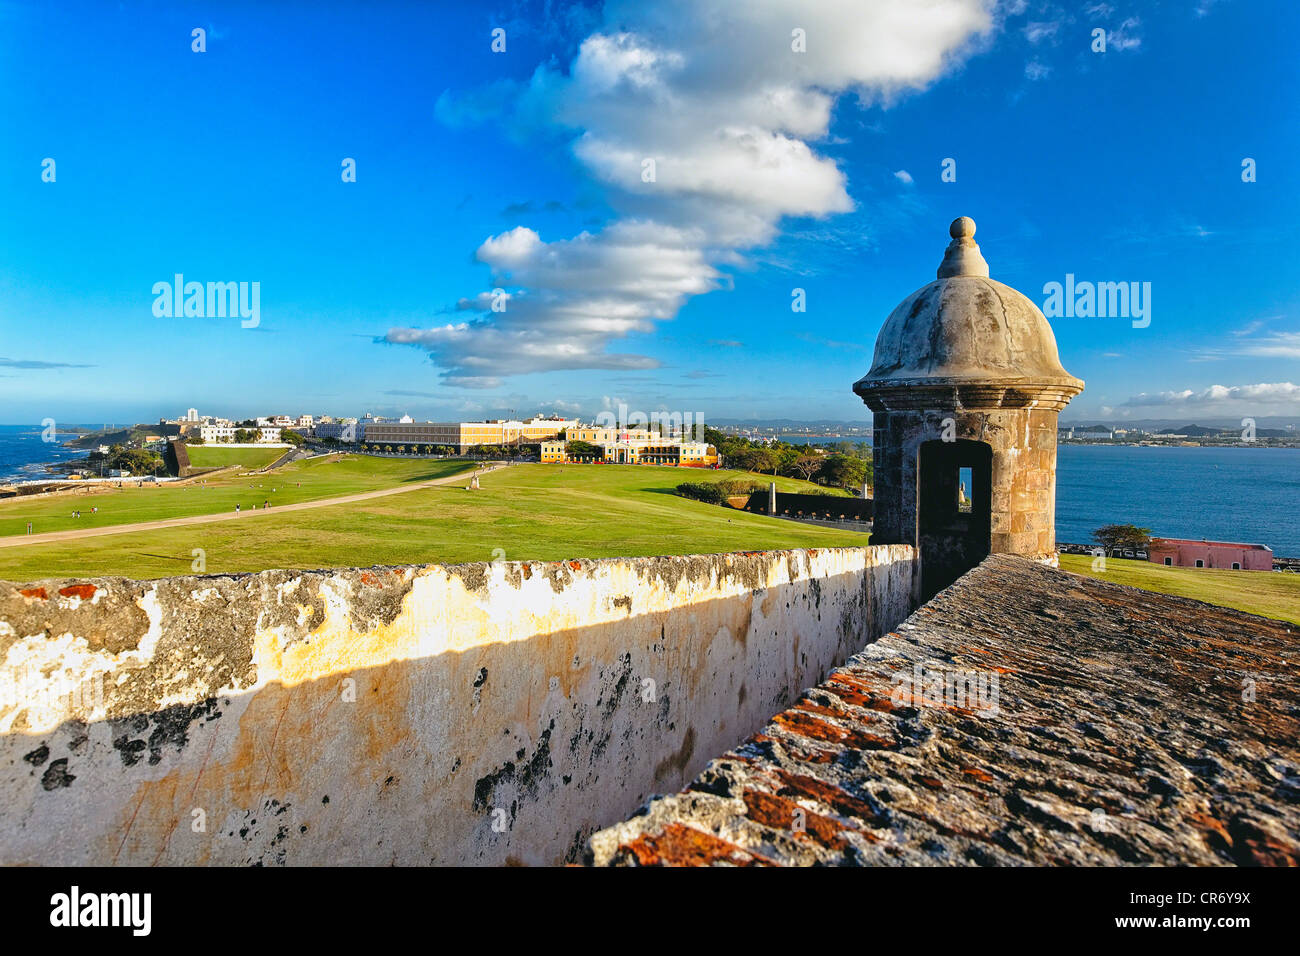 High Angle View of Old San Juan From The El Morro Fort, Puerto Rico - Stock Image